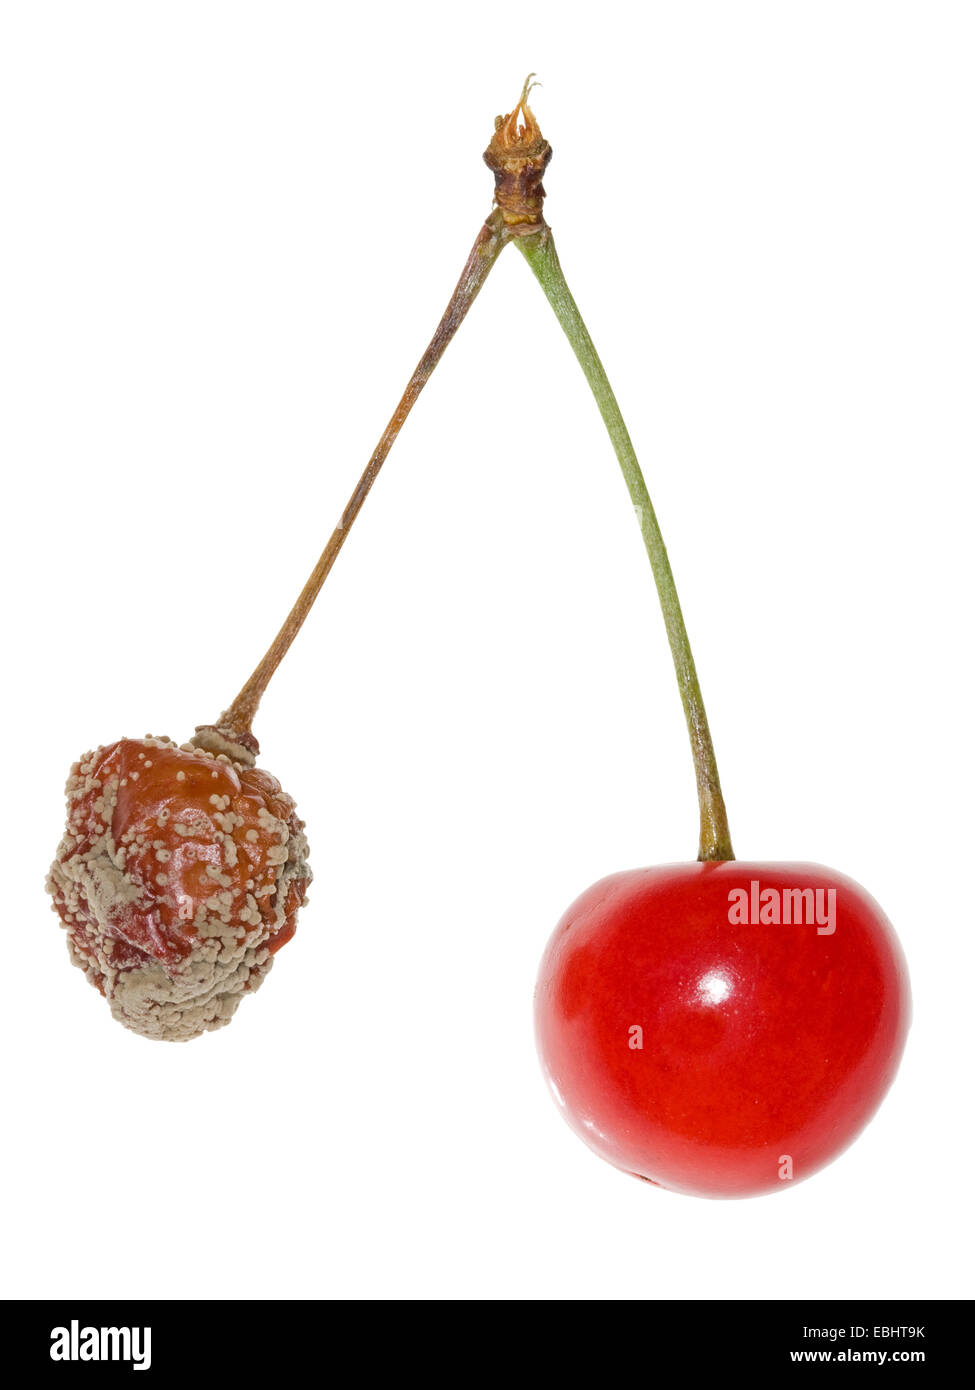 Two cherries, one infected by Brown rot (Monilinia fructigena), a fungus disease. - Stock Image